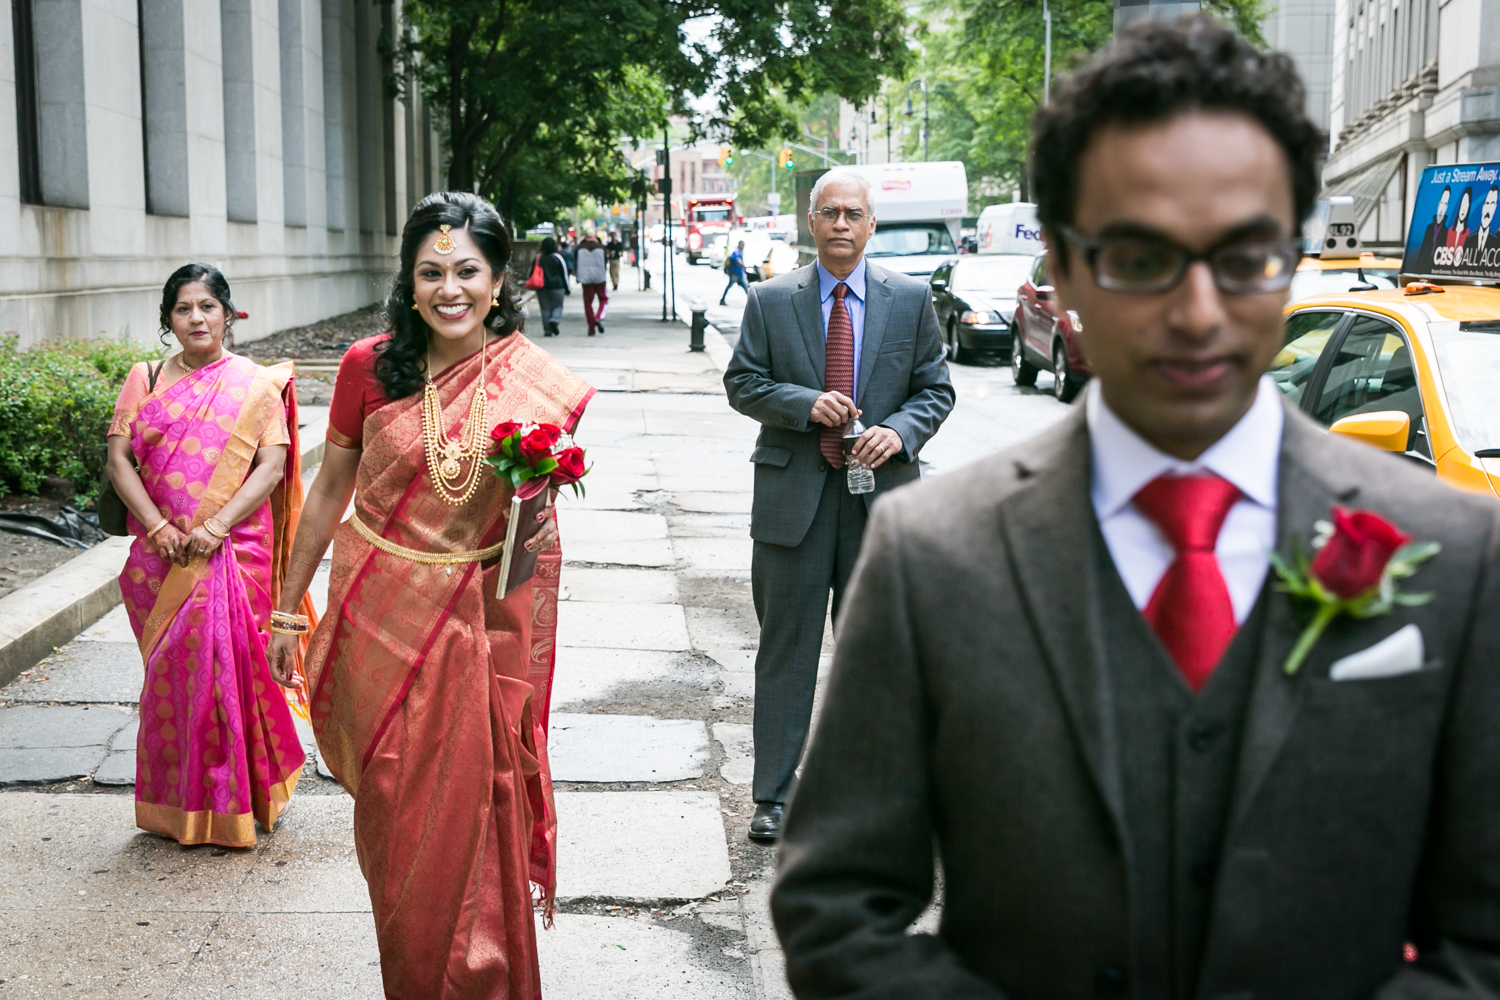 Indian bride wearing sari about to approach groom on sidewalk for first look